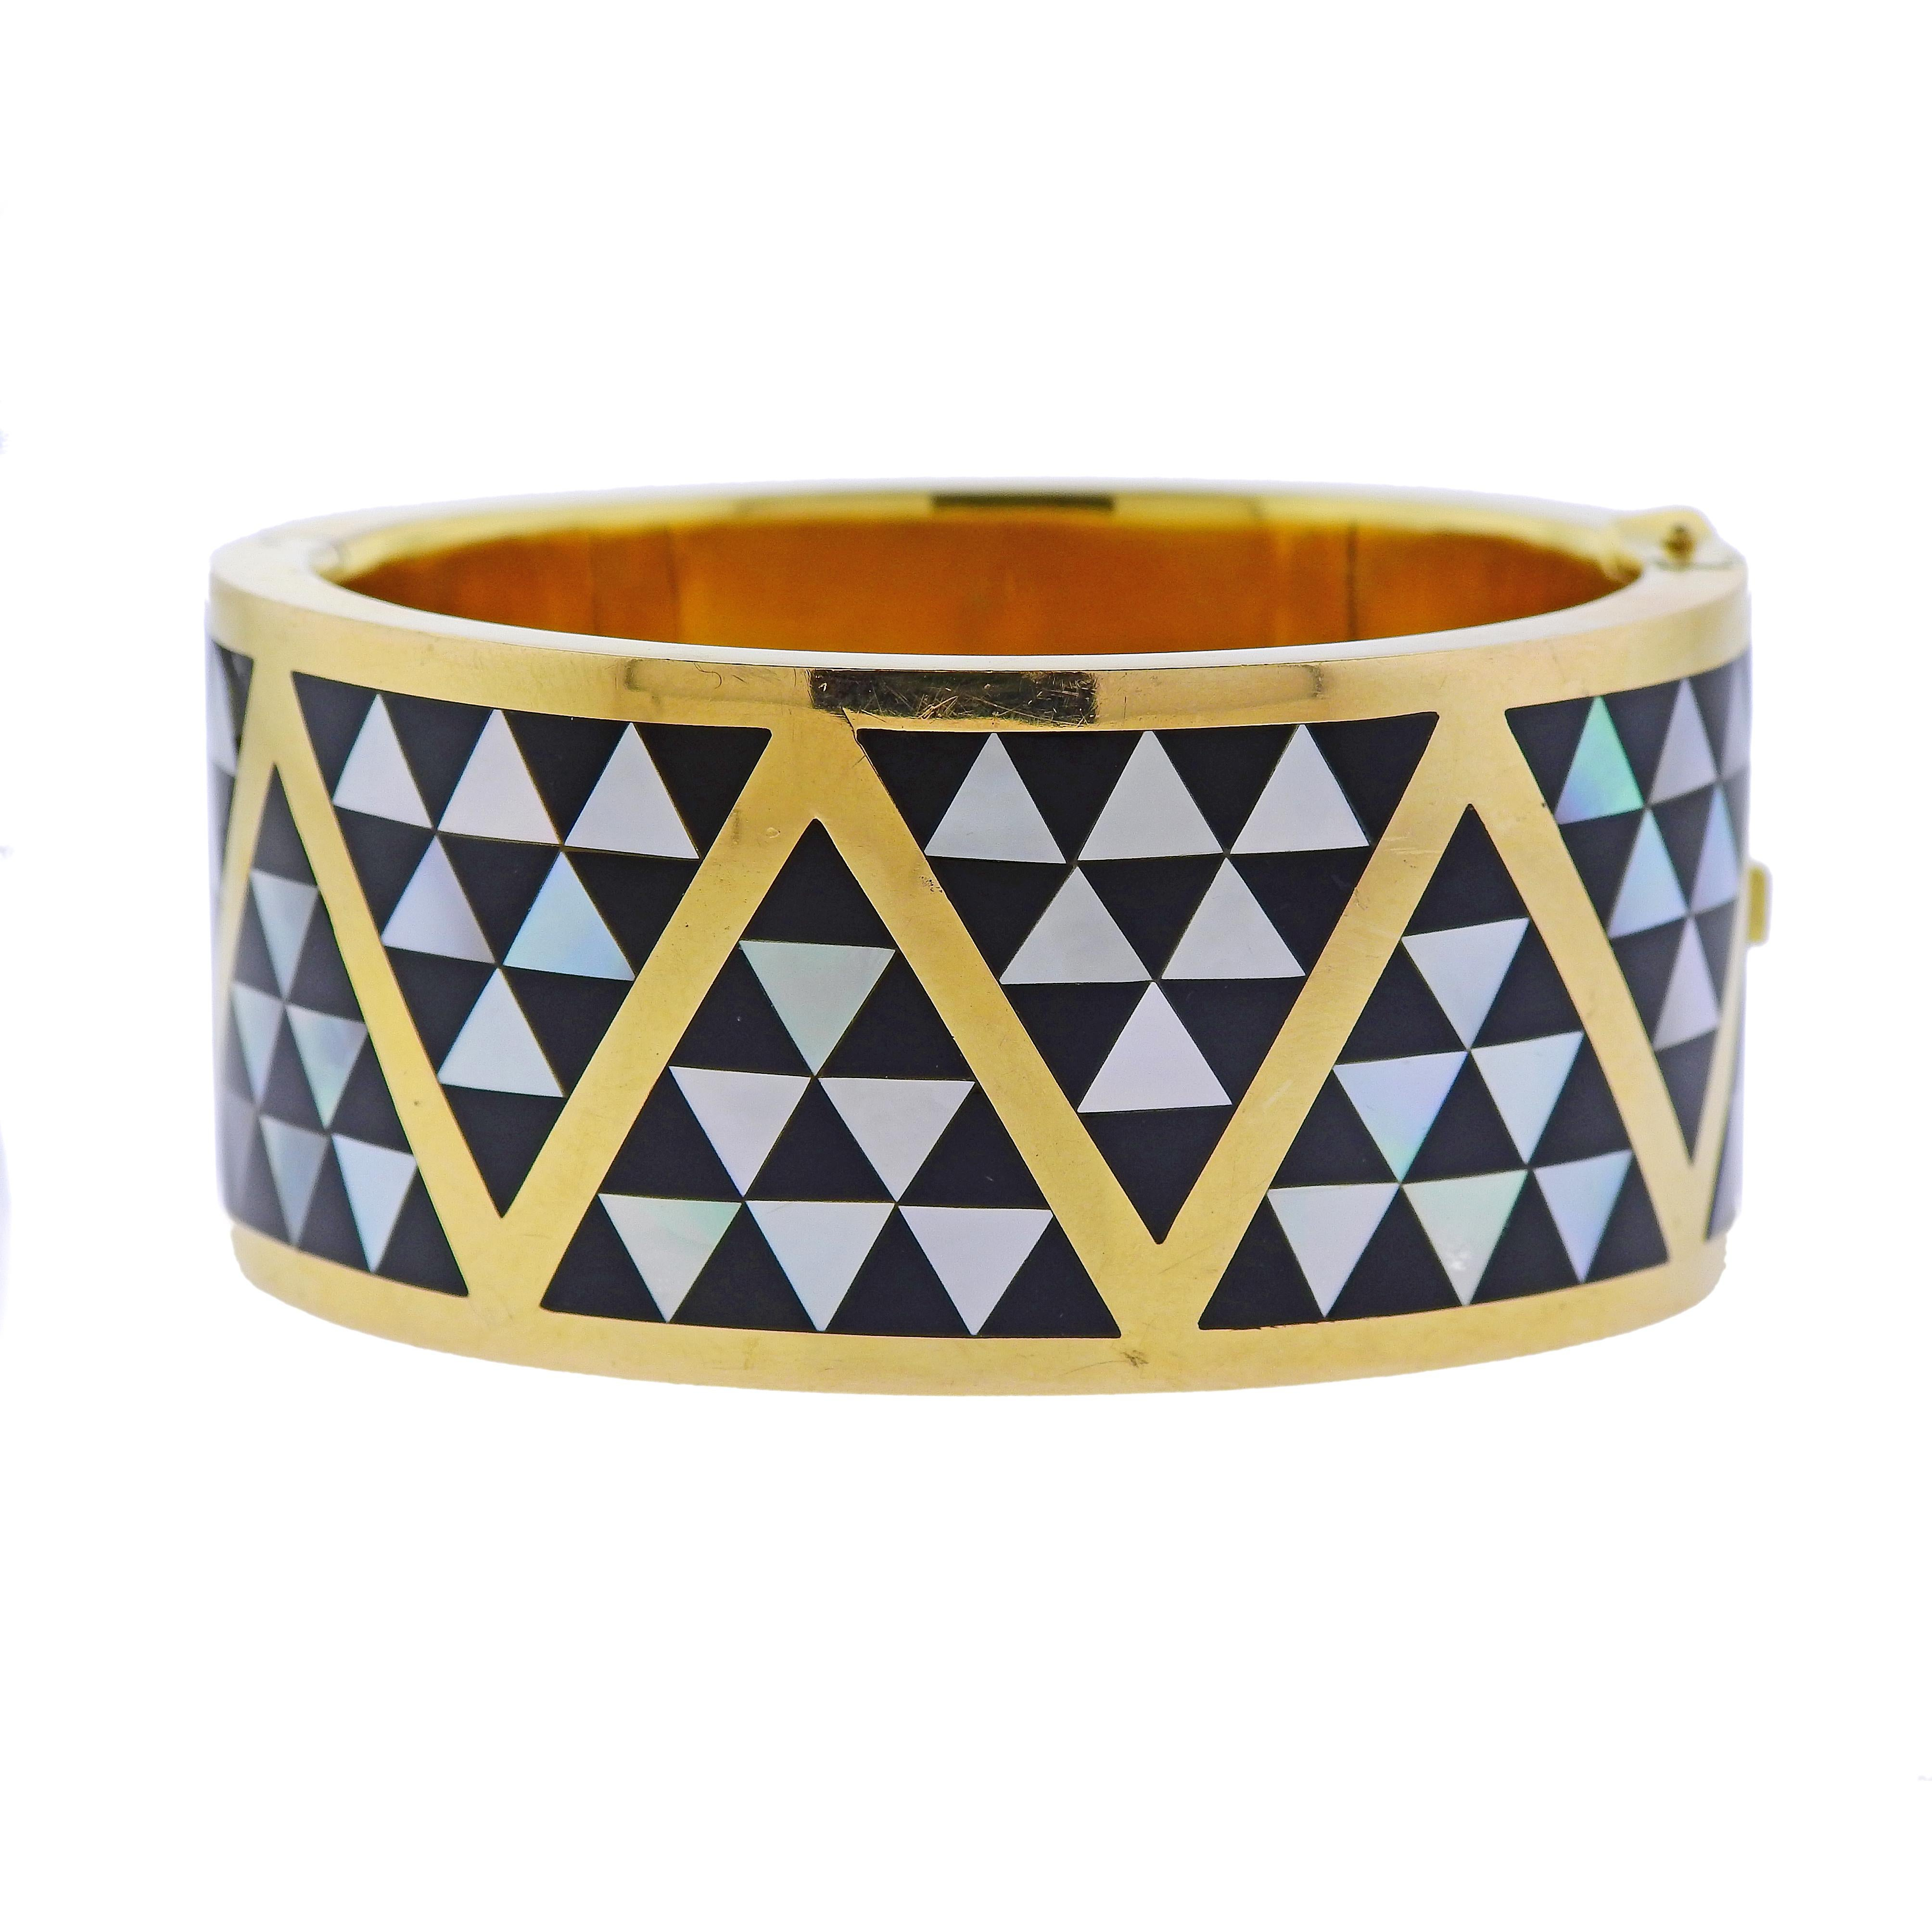 77fa771d6 Asch Grossbardt Inlay Mother of Pearl Onyx Gold Bangle Bracelet For Sale at  1stdibs